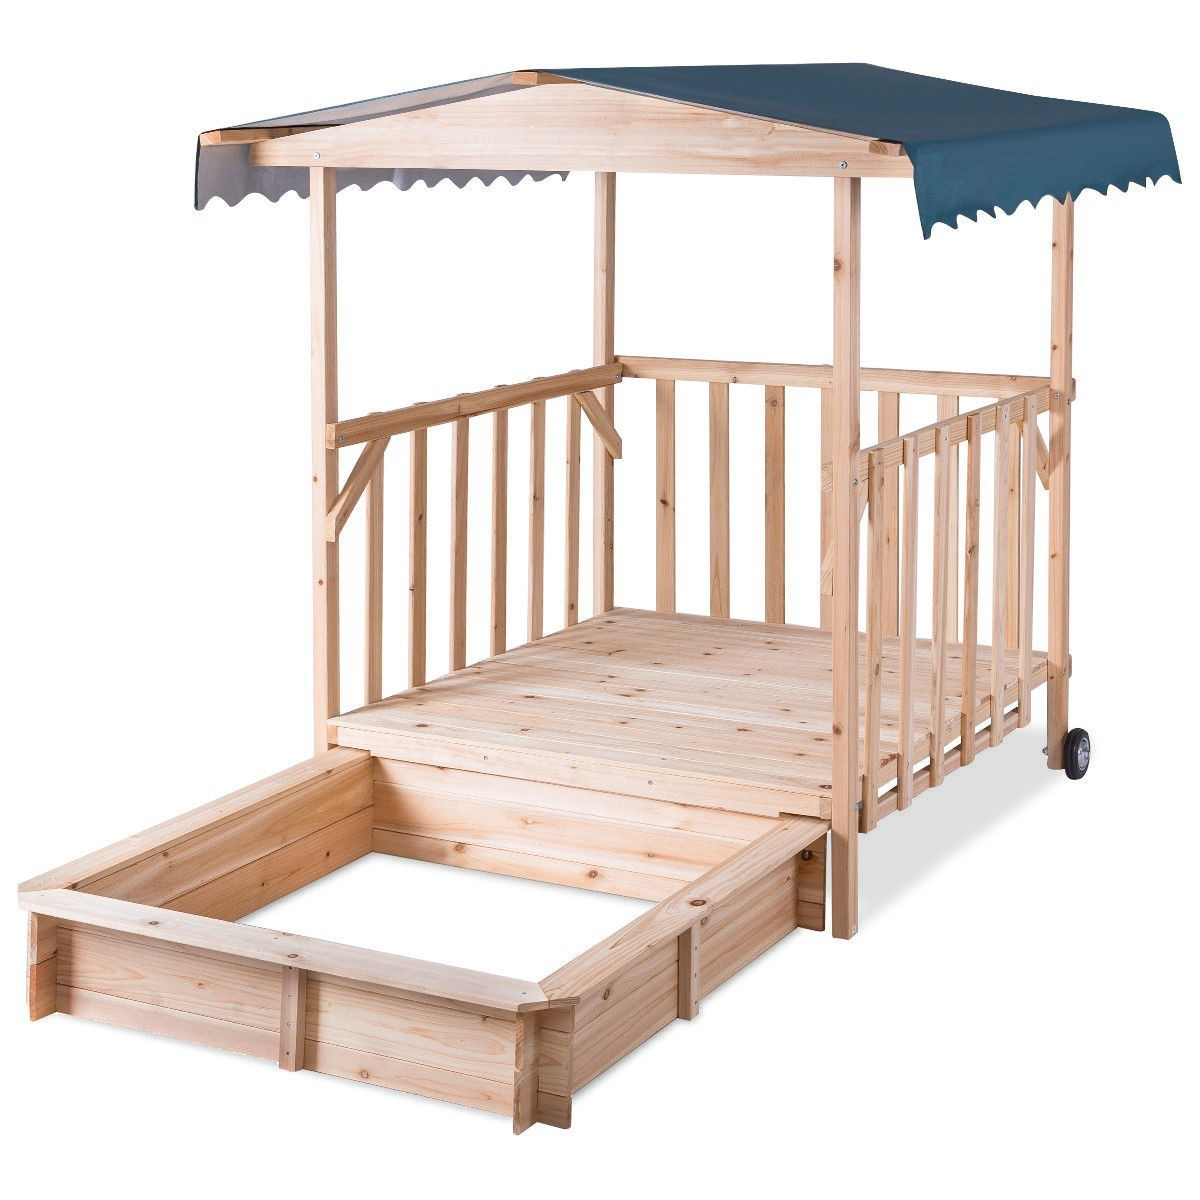 Outdoor Children Retractable Beach Cabana Sandbox with Canopy by